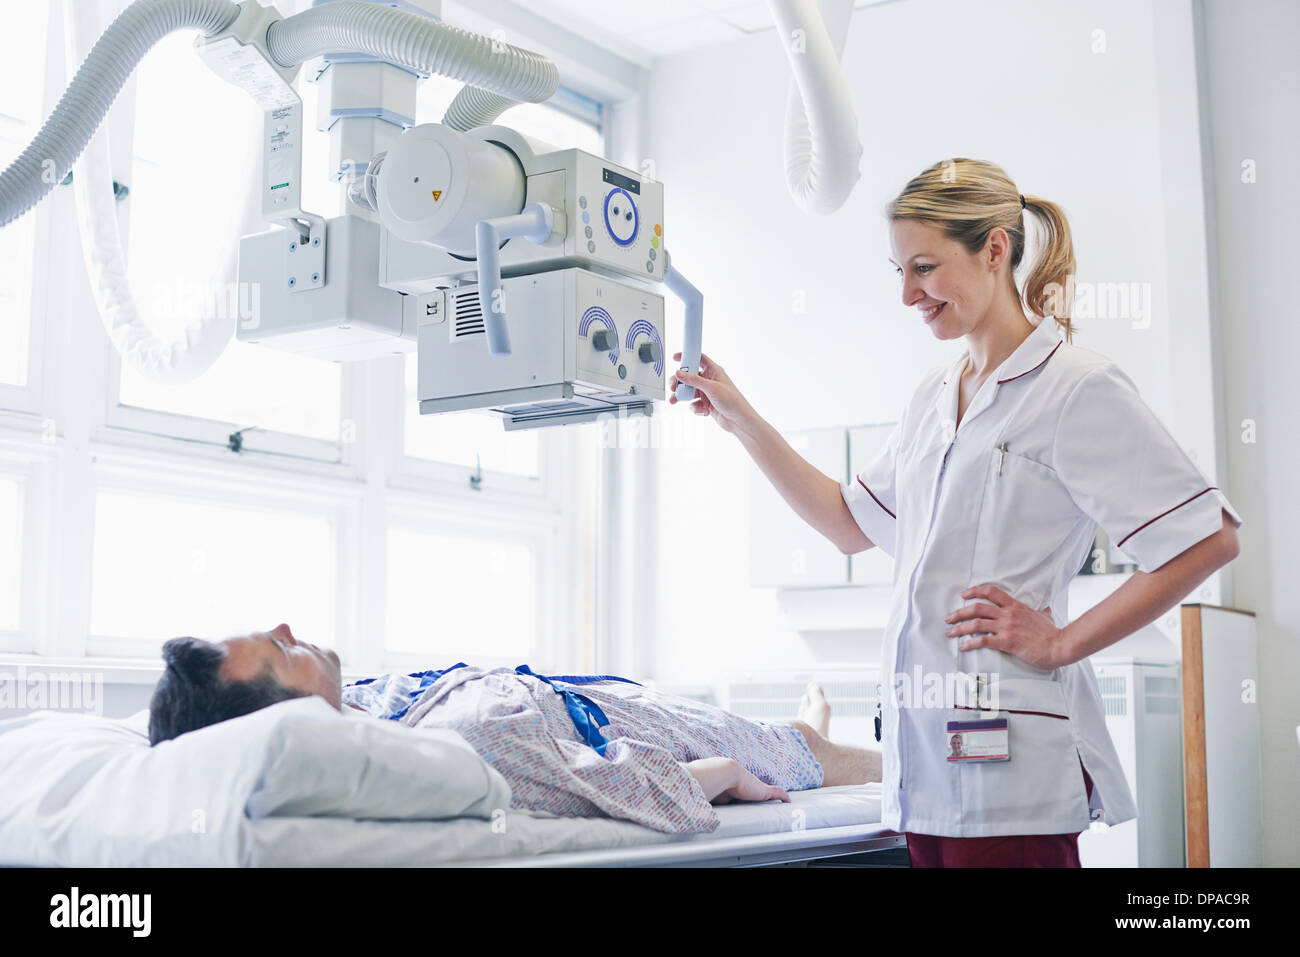 Radiologist scanning patient - Stock Image